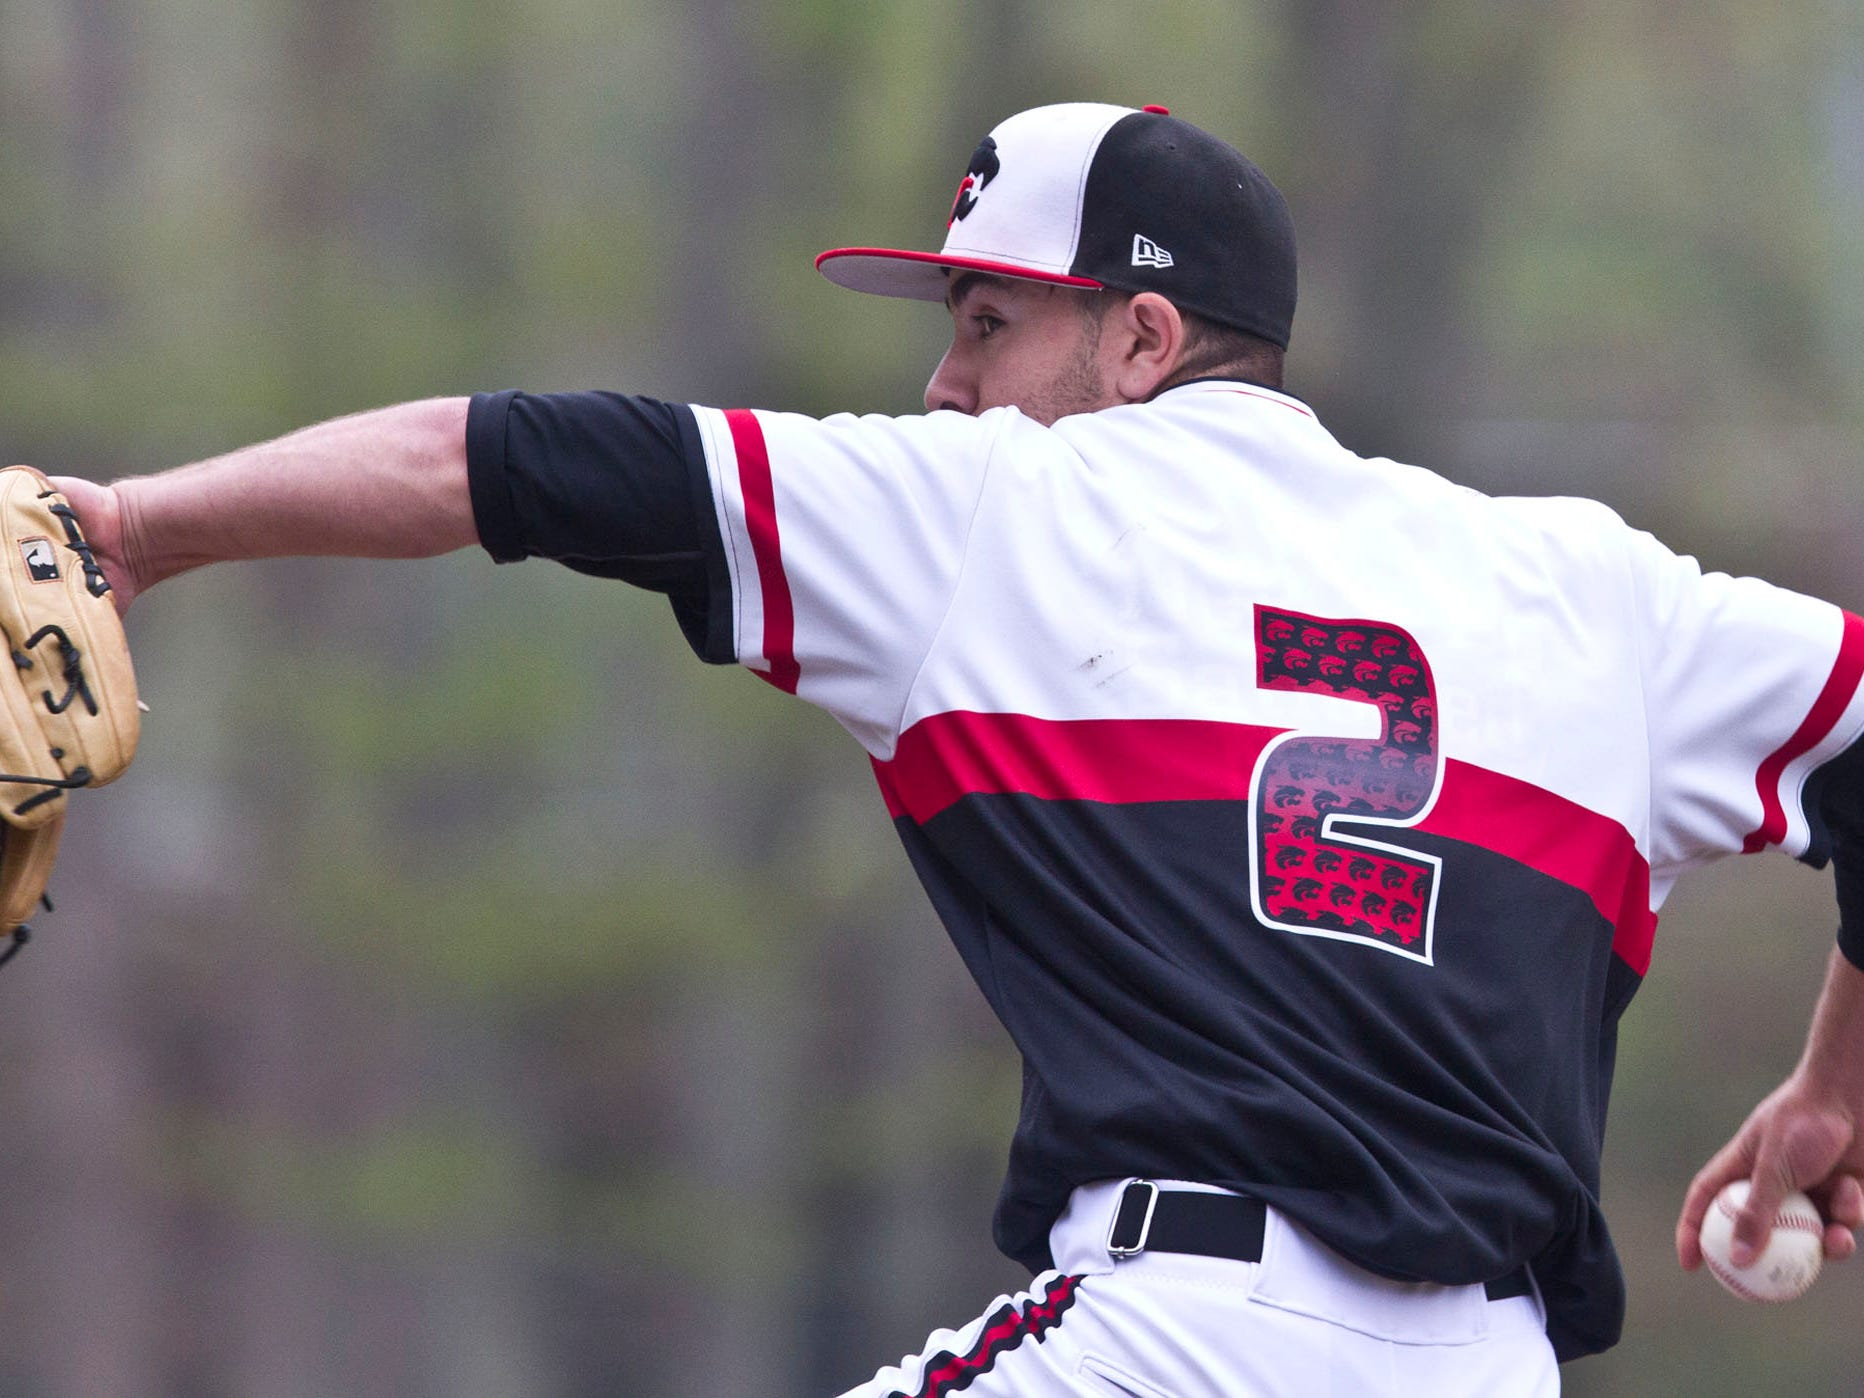 Brandon Janofsky, shown pitching against Toms River South on May 9 in an Ocean County Tournament semifinal, has helped Jackson Memorial to the No. 2 ranking in the Asbury Park Press Top 10